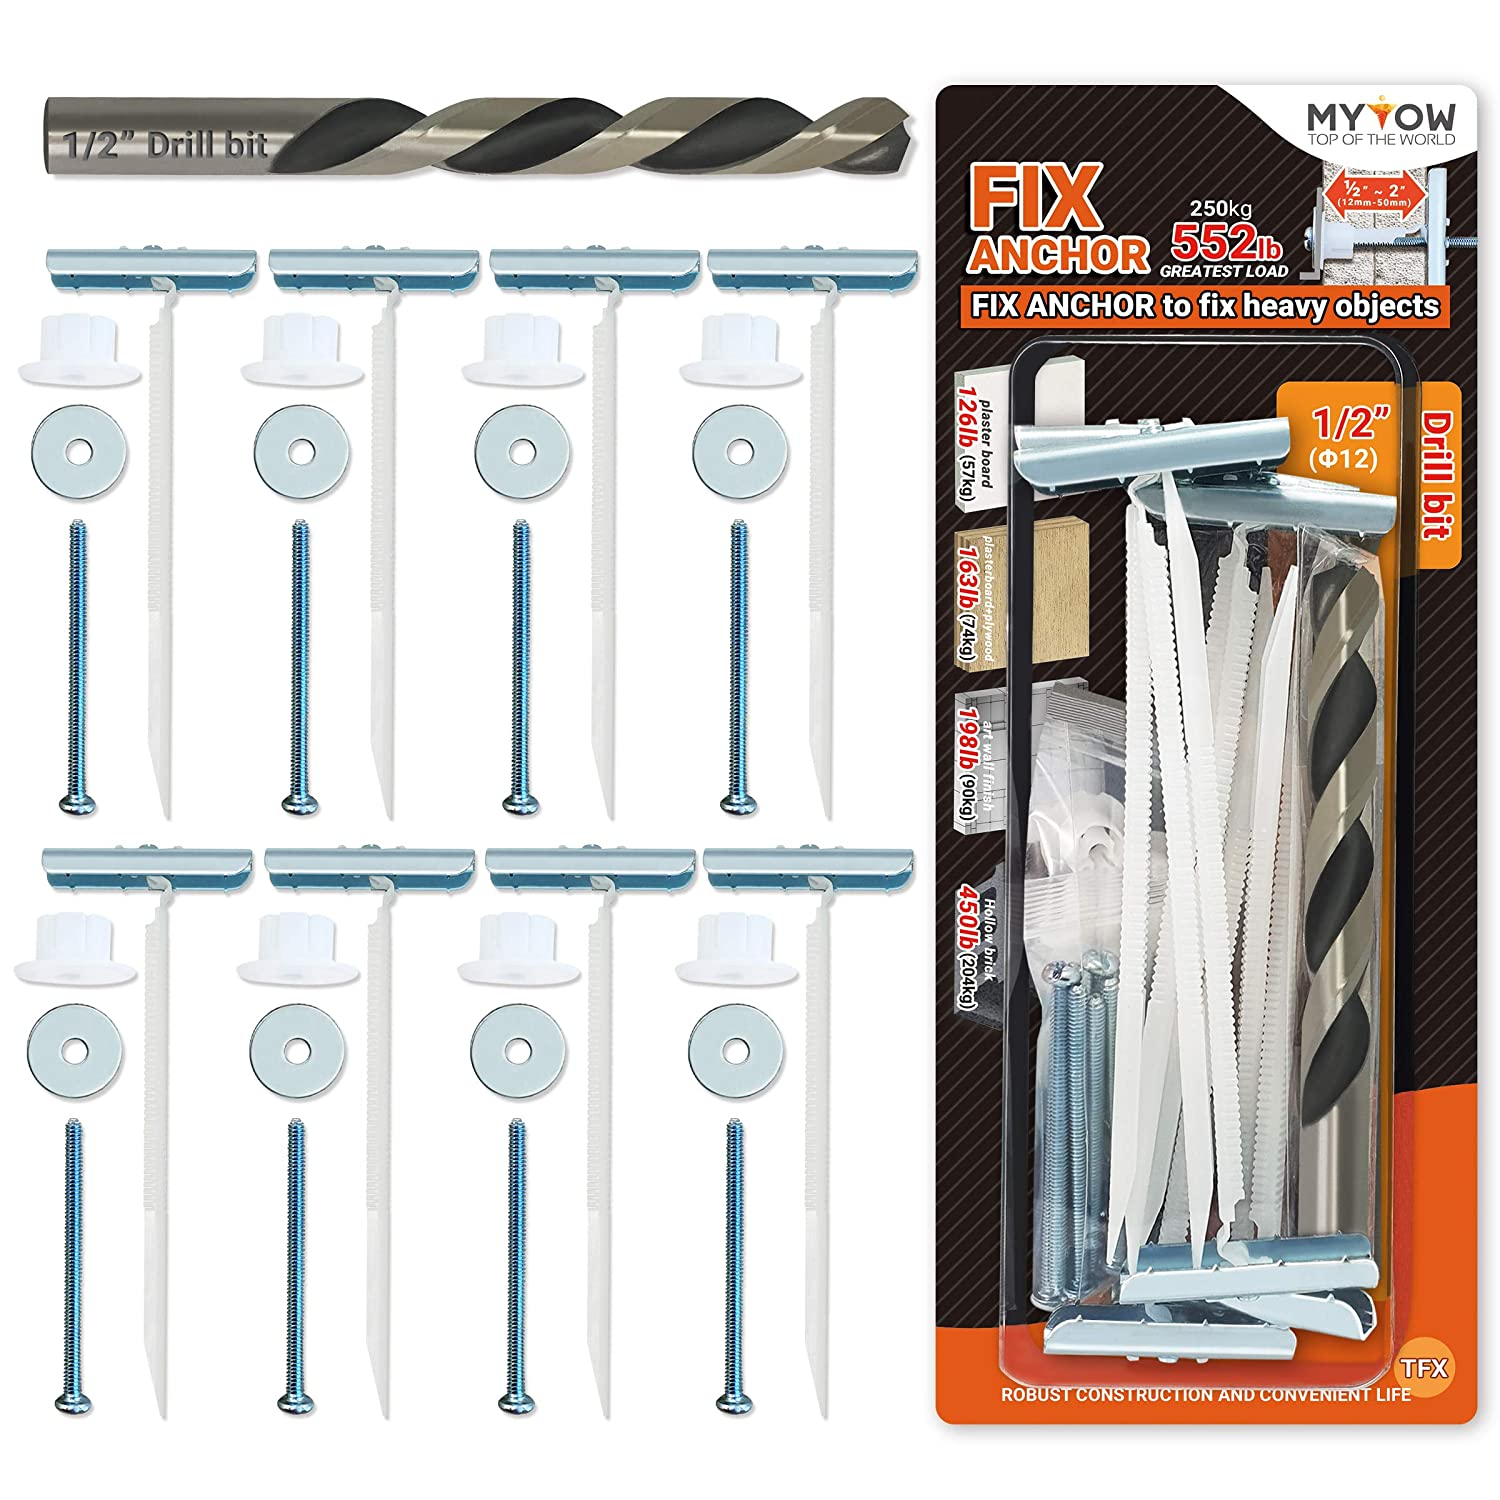 MYTOW FIX Heavy Duty cheap Toggle Drywall At the price of surprise Plywood Anchors Pack for